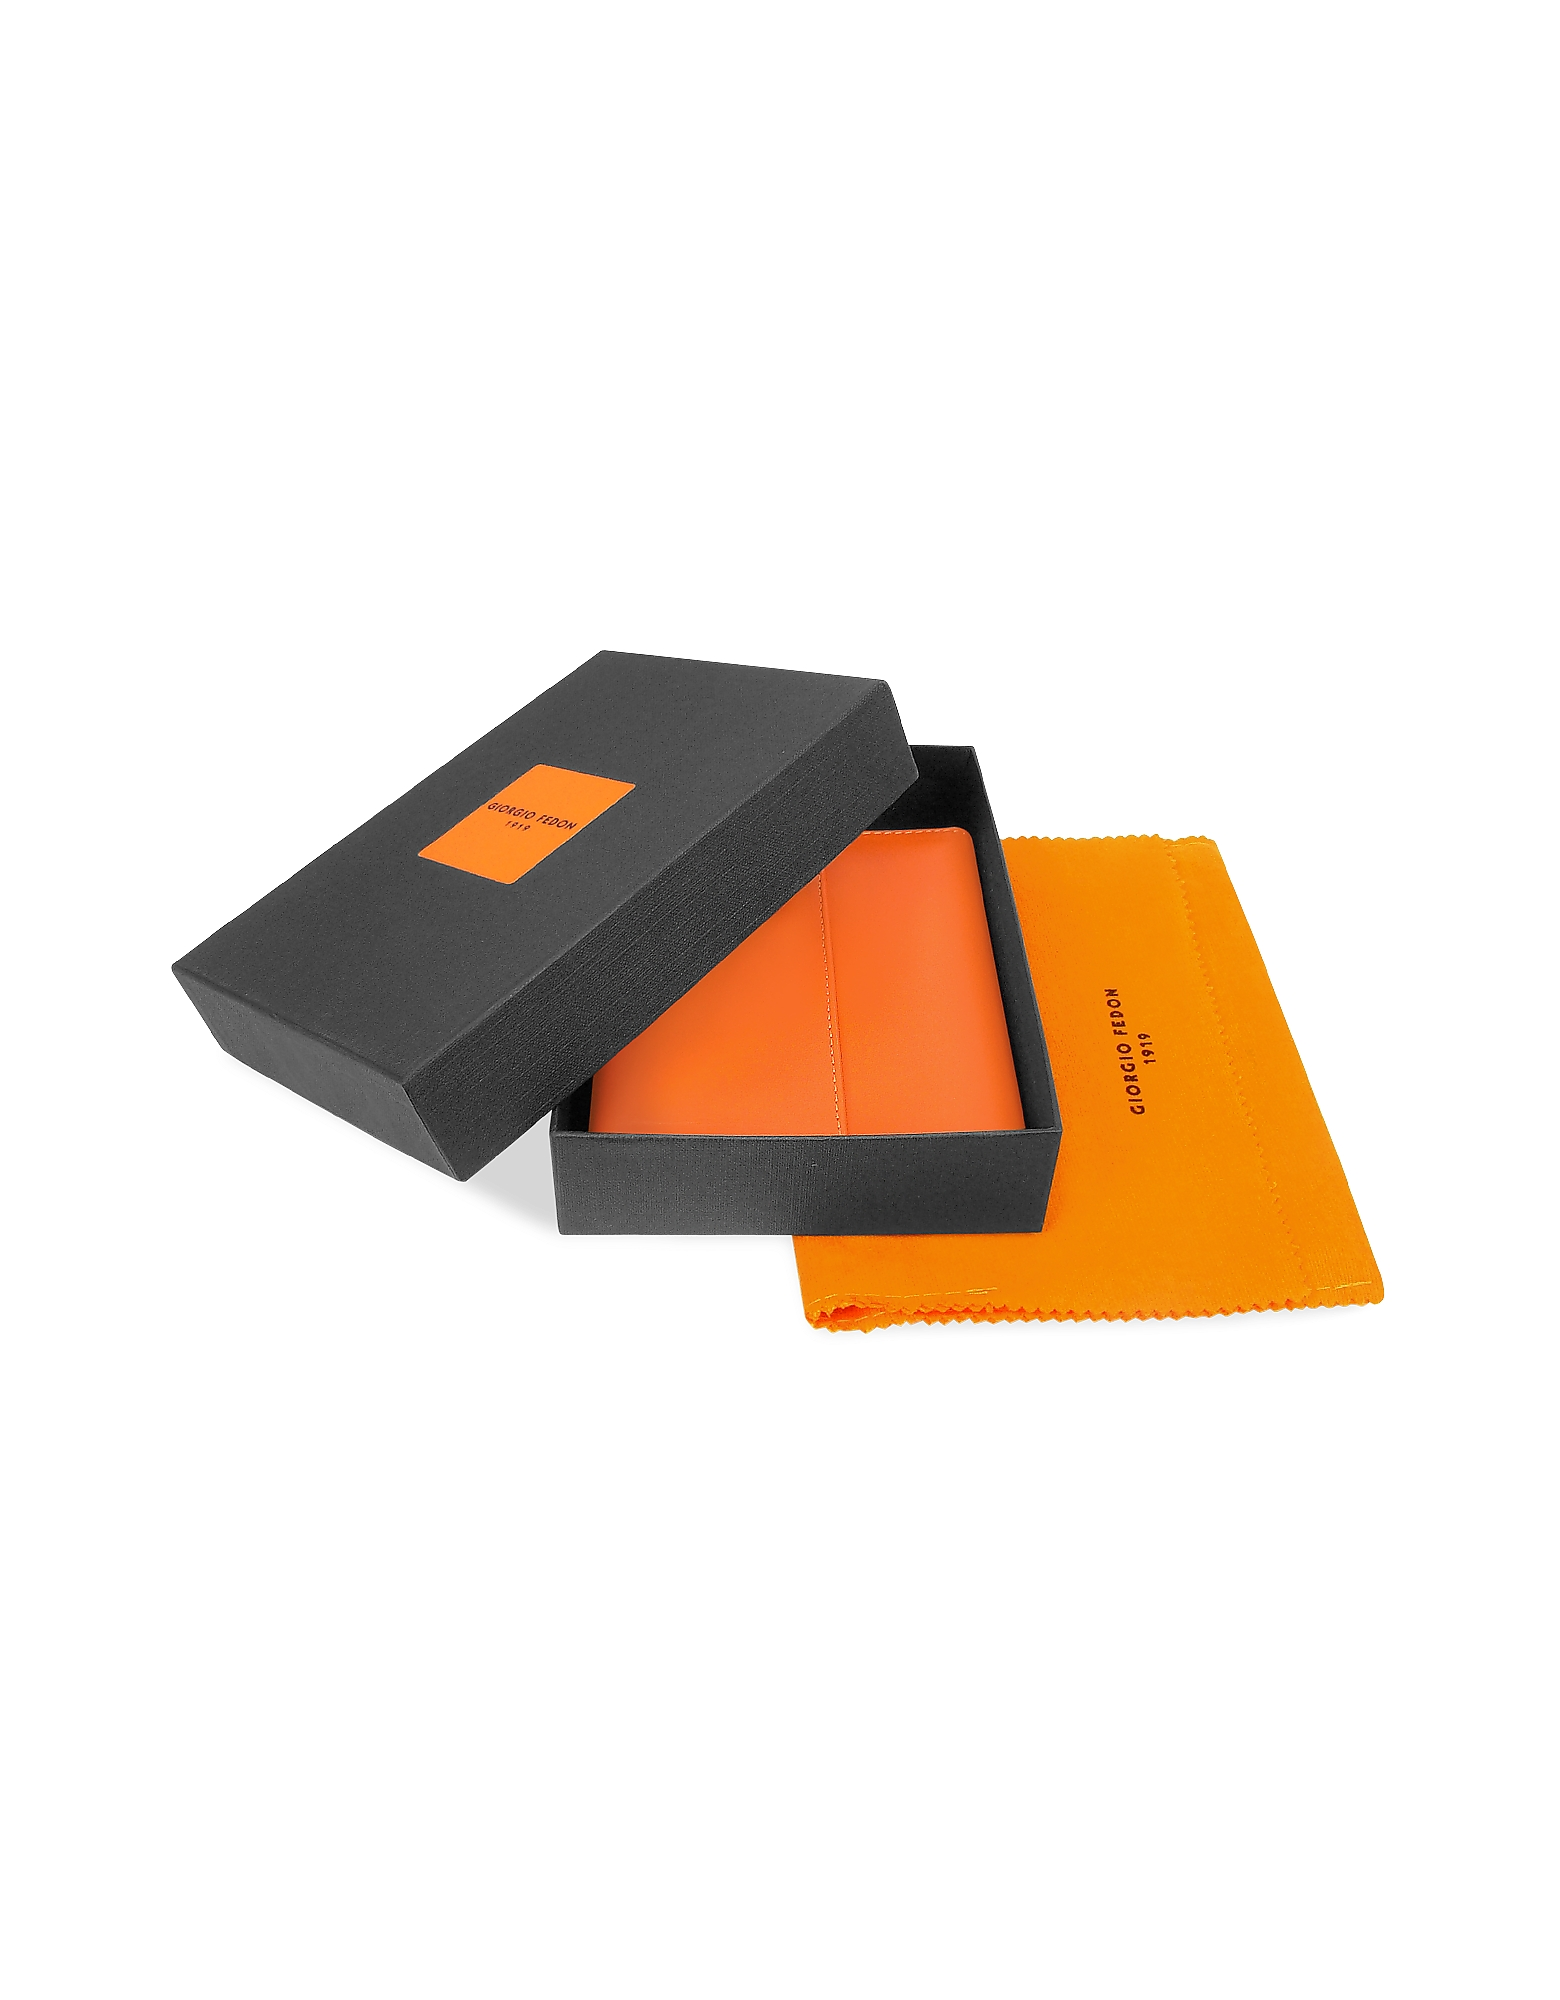 Classica - Women's Orange Calfskin Flap Wallet от Forzieri.com INT